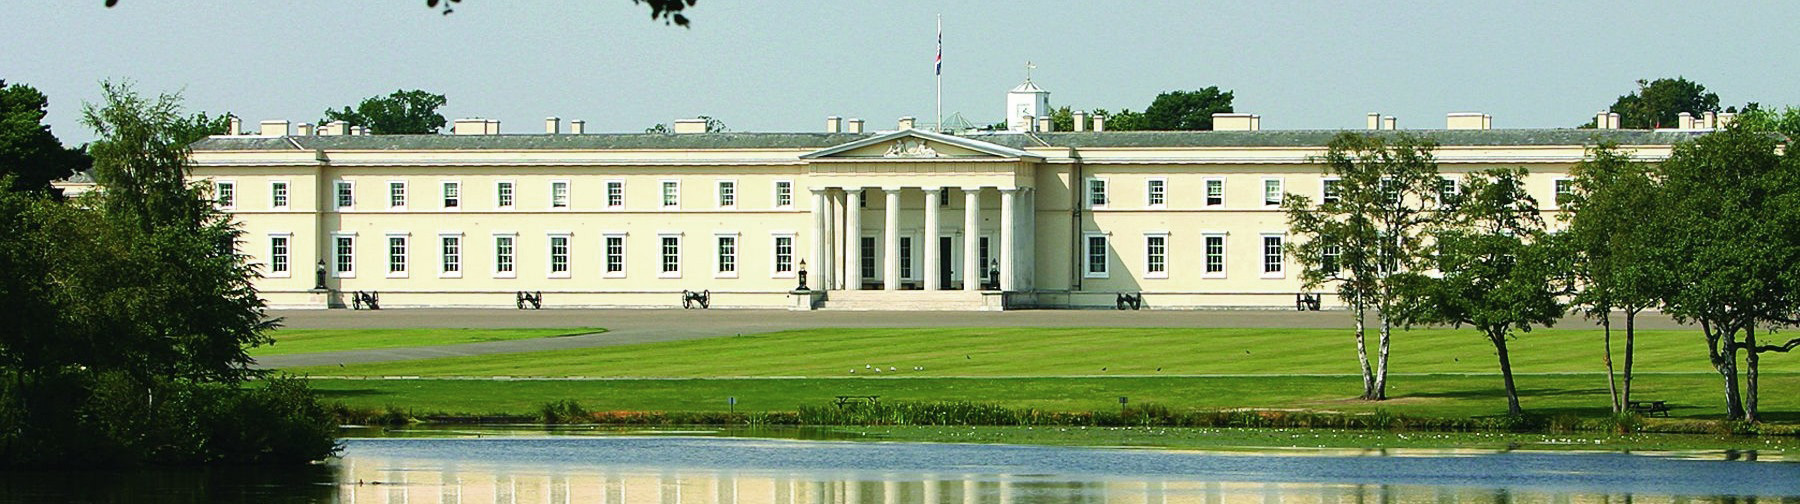 Old College, The Royal Military Academy Sandhurst